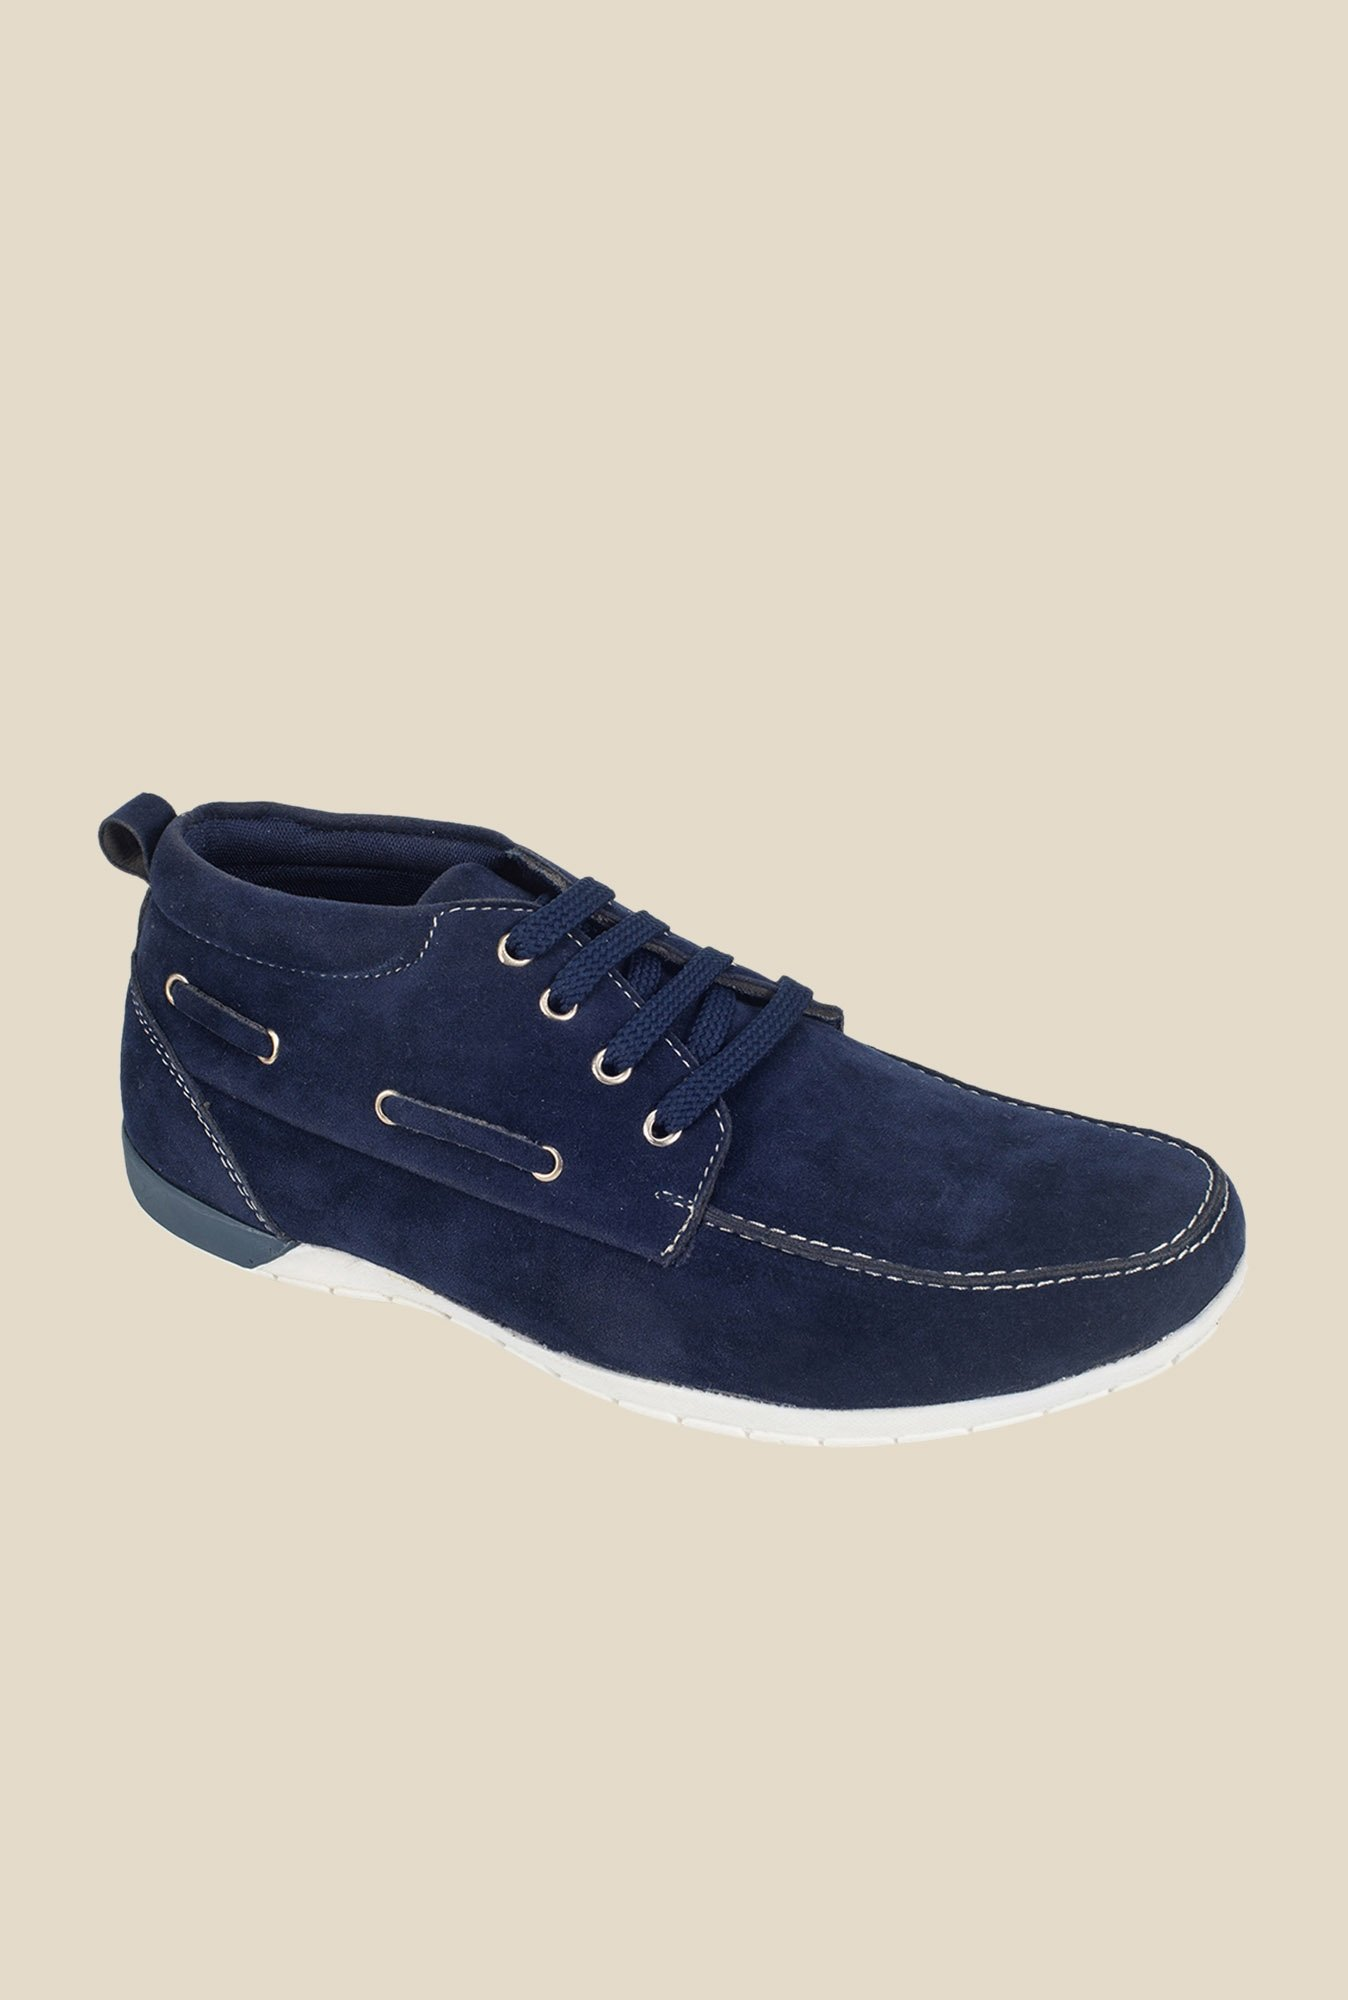 Khadim's Navy Casual Boots